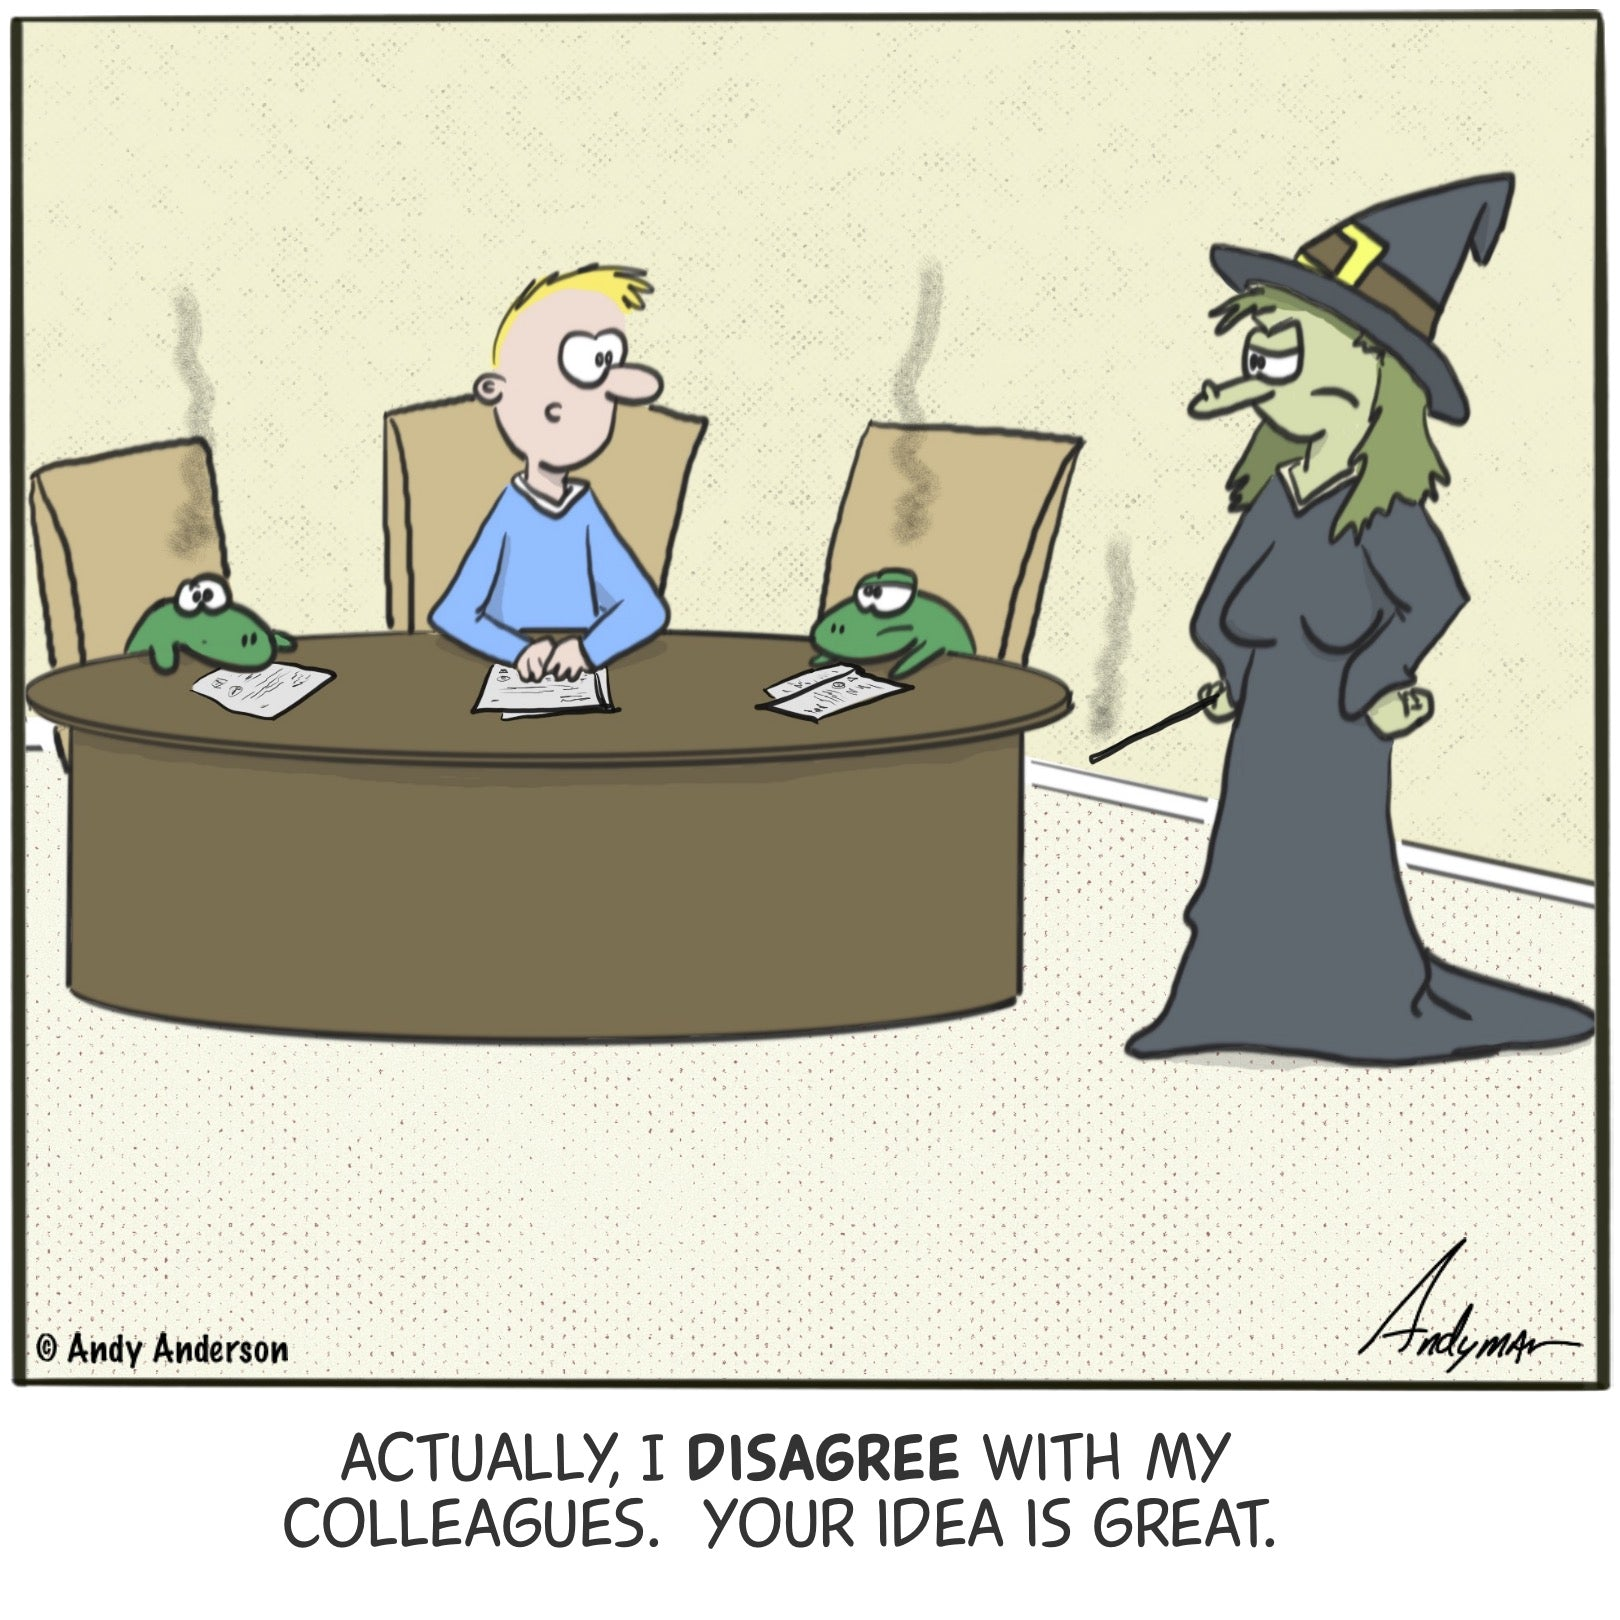 Cartoon about a witch who turns employees into frogs for disagreeing